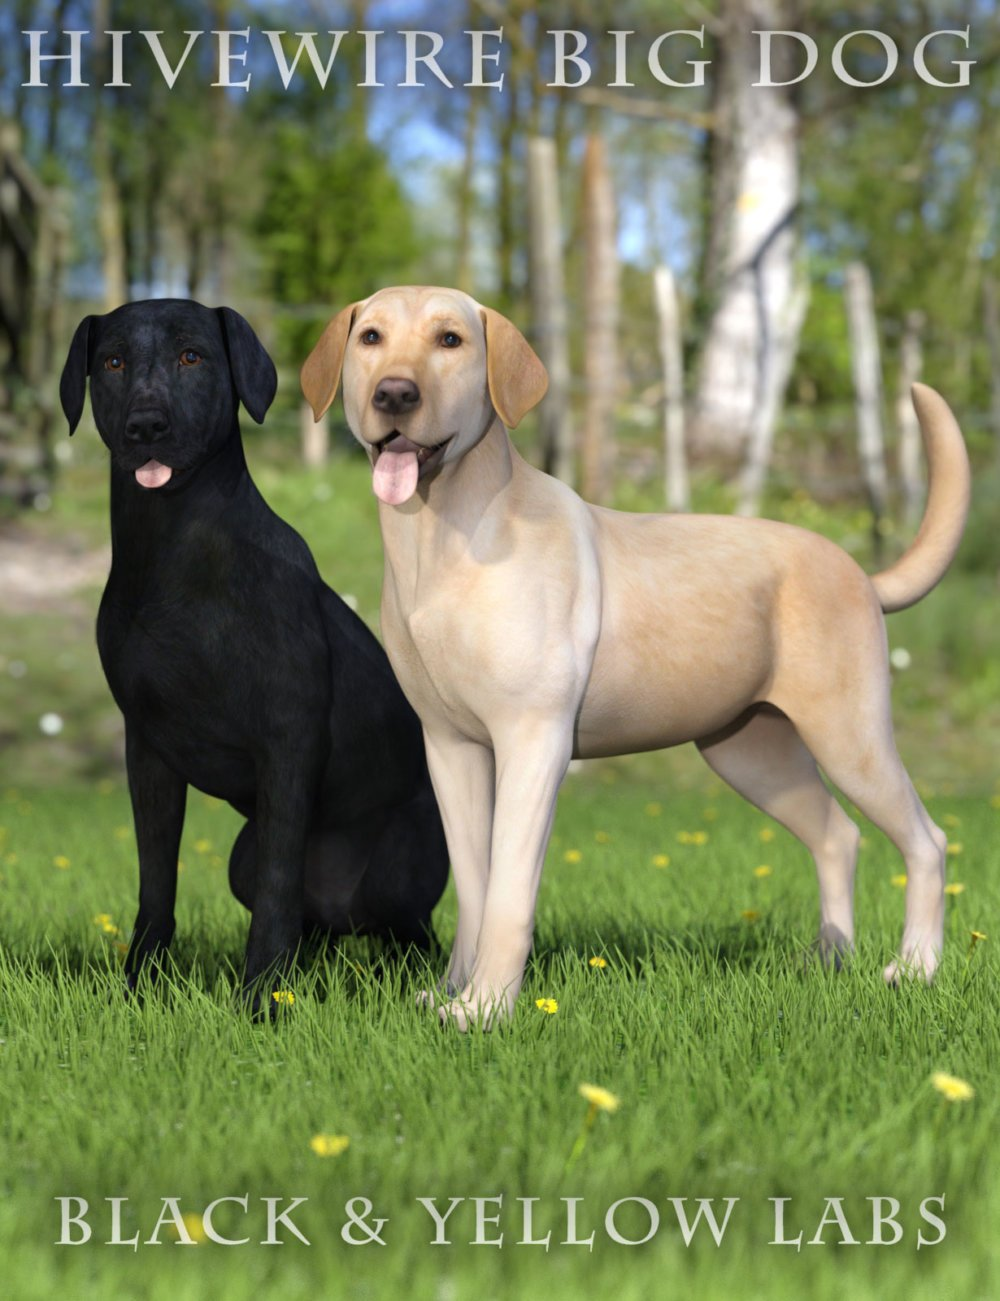 Black and Yellow Labs for the HiveWire Big Dog